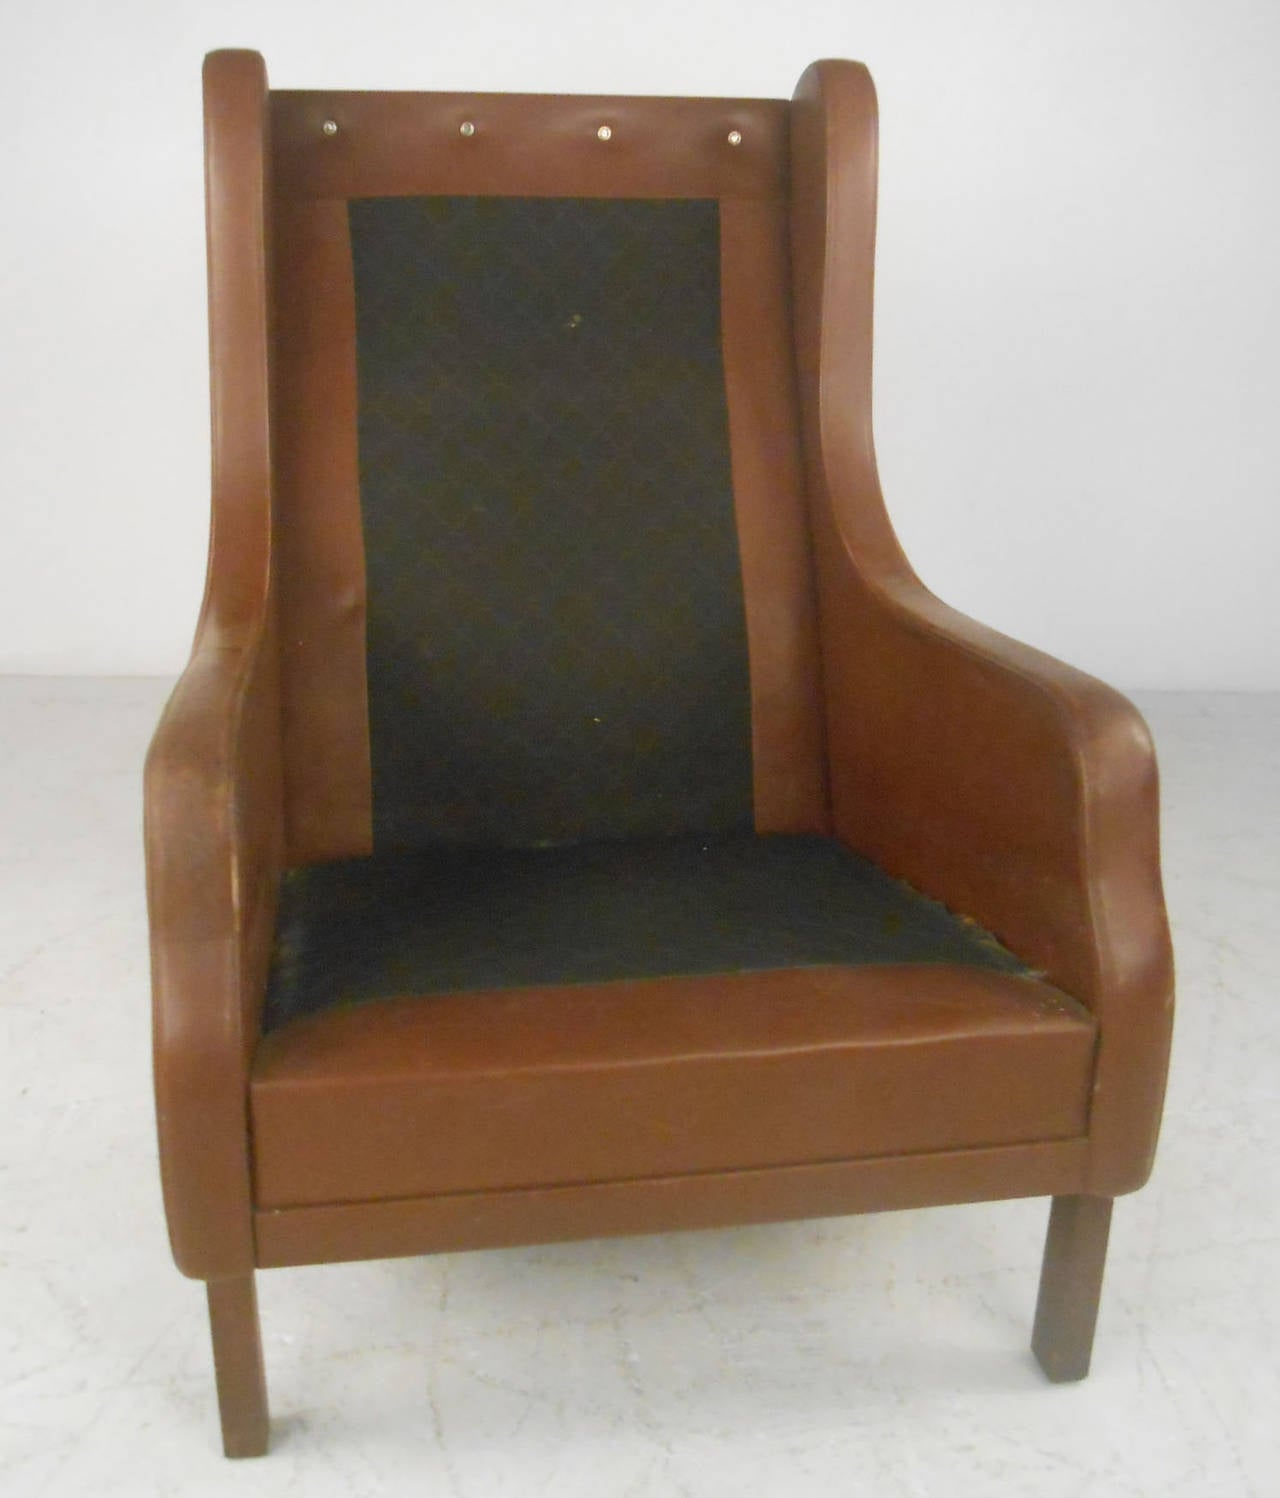 Unique Mid-Century Modern Vintage Leather Danish Lounge Chair For Sale 2